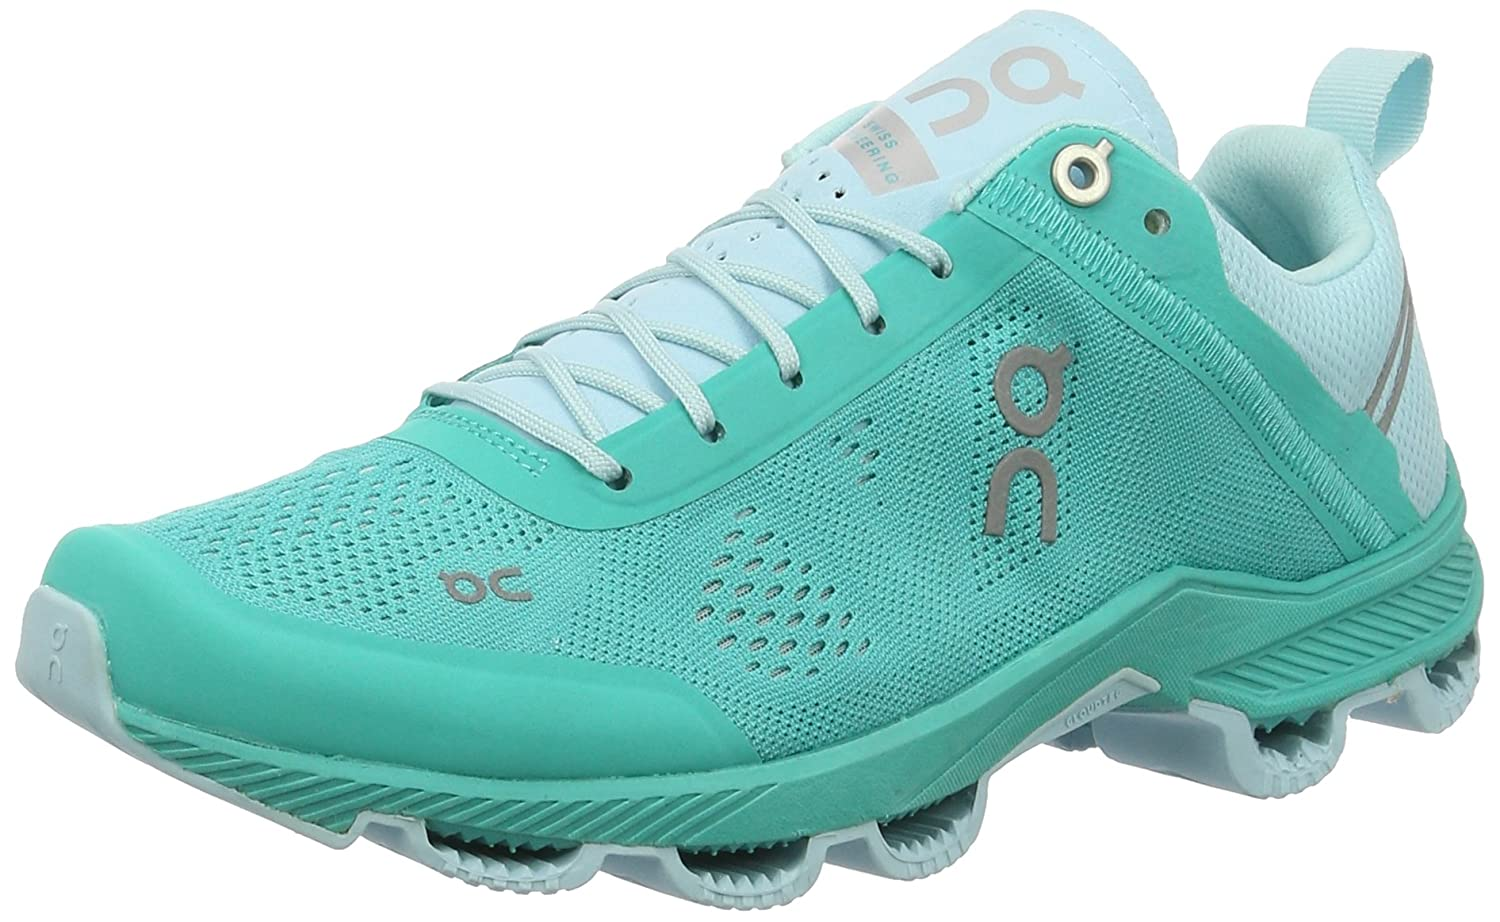 ON Women's Cloudsurfer Sneaker B019DHYYD4 8.5 B(M) US|Atlantis/Haze